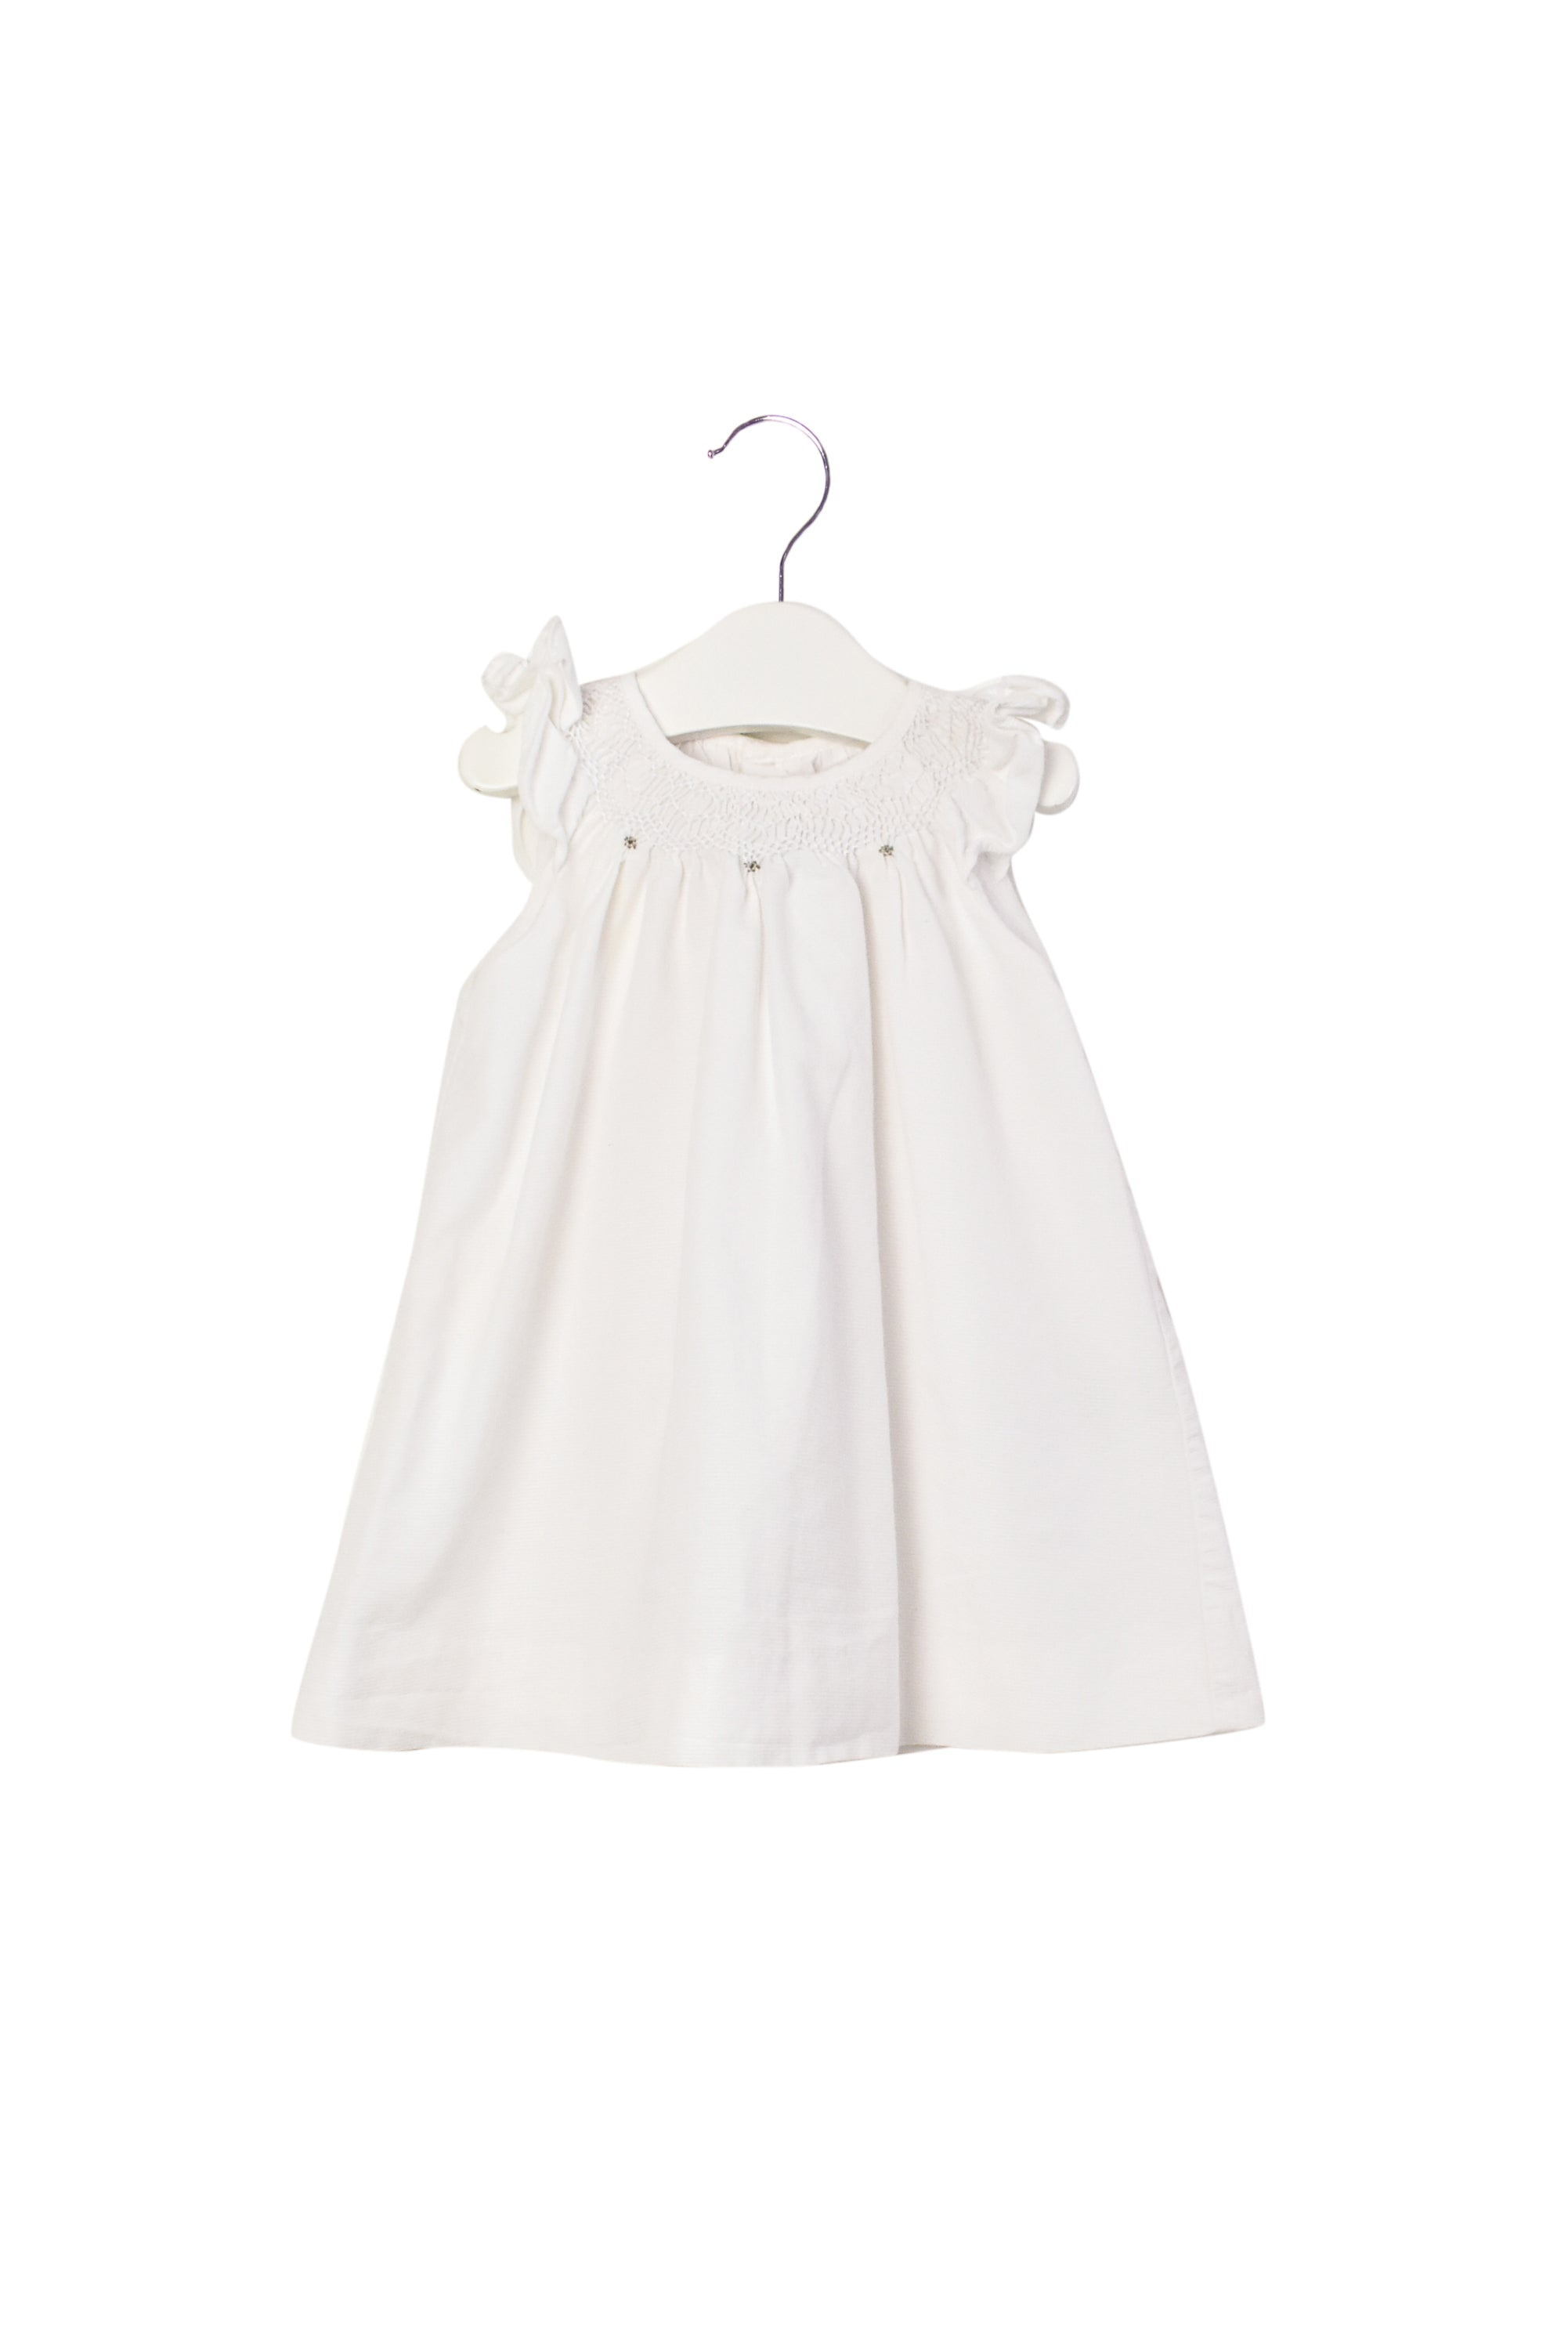 10007424 Jacadi Baby~ Dress and Bloomer 12M at Retykle